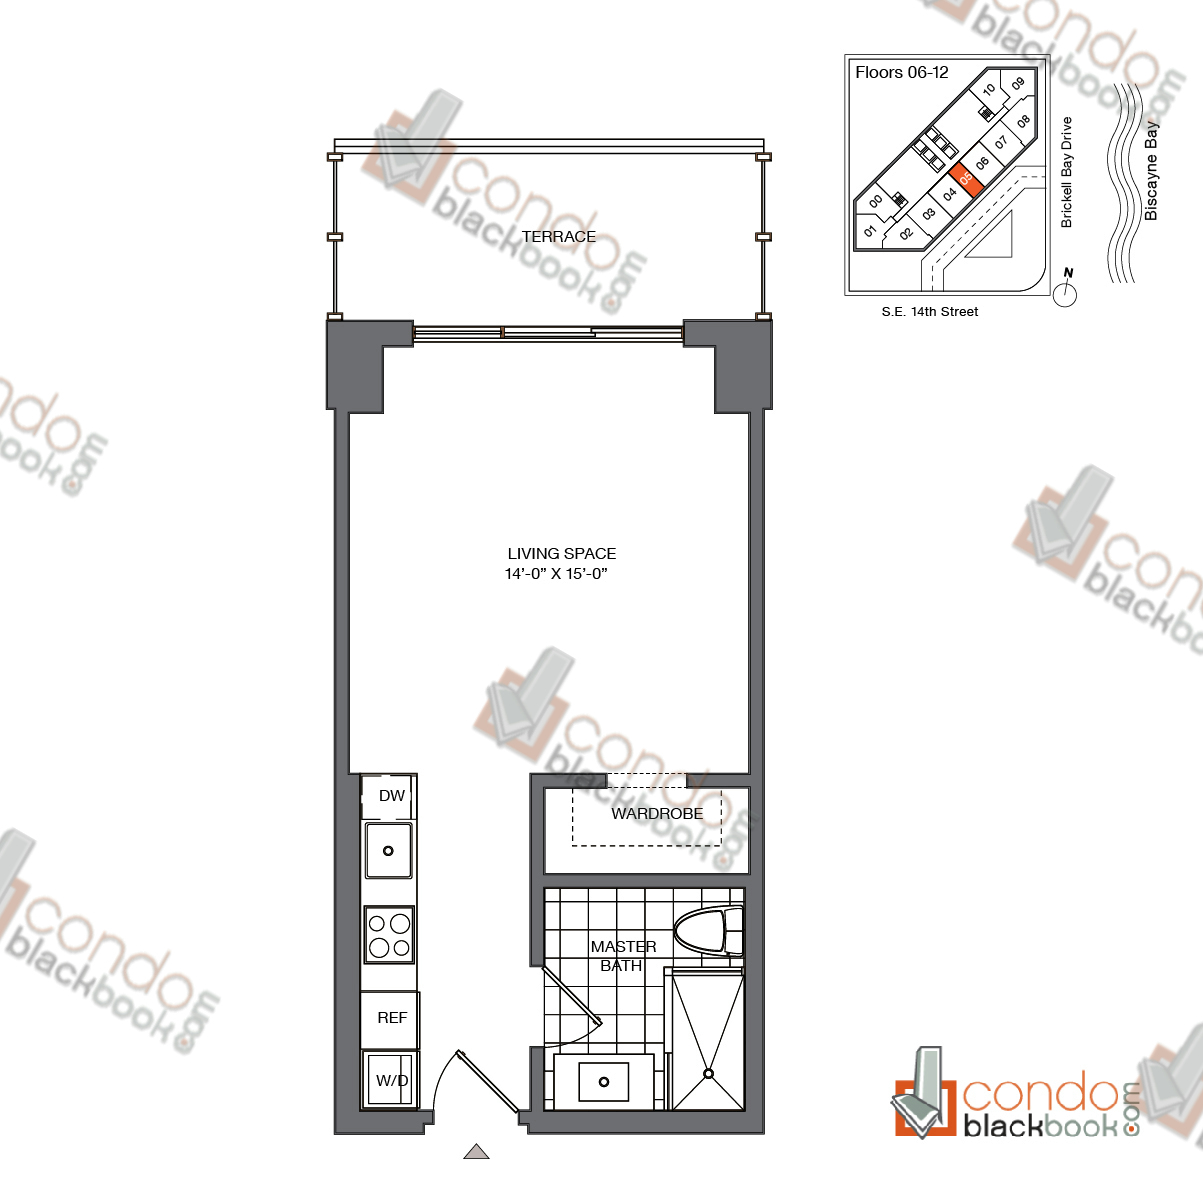 Floor plan for Brickell House Brickell Miami, model S1_6-12, line 05, 0/1 bedrooms, 420 sq ft